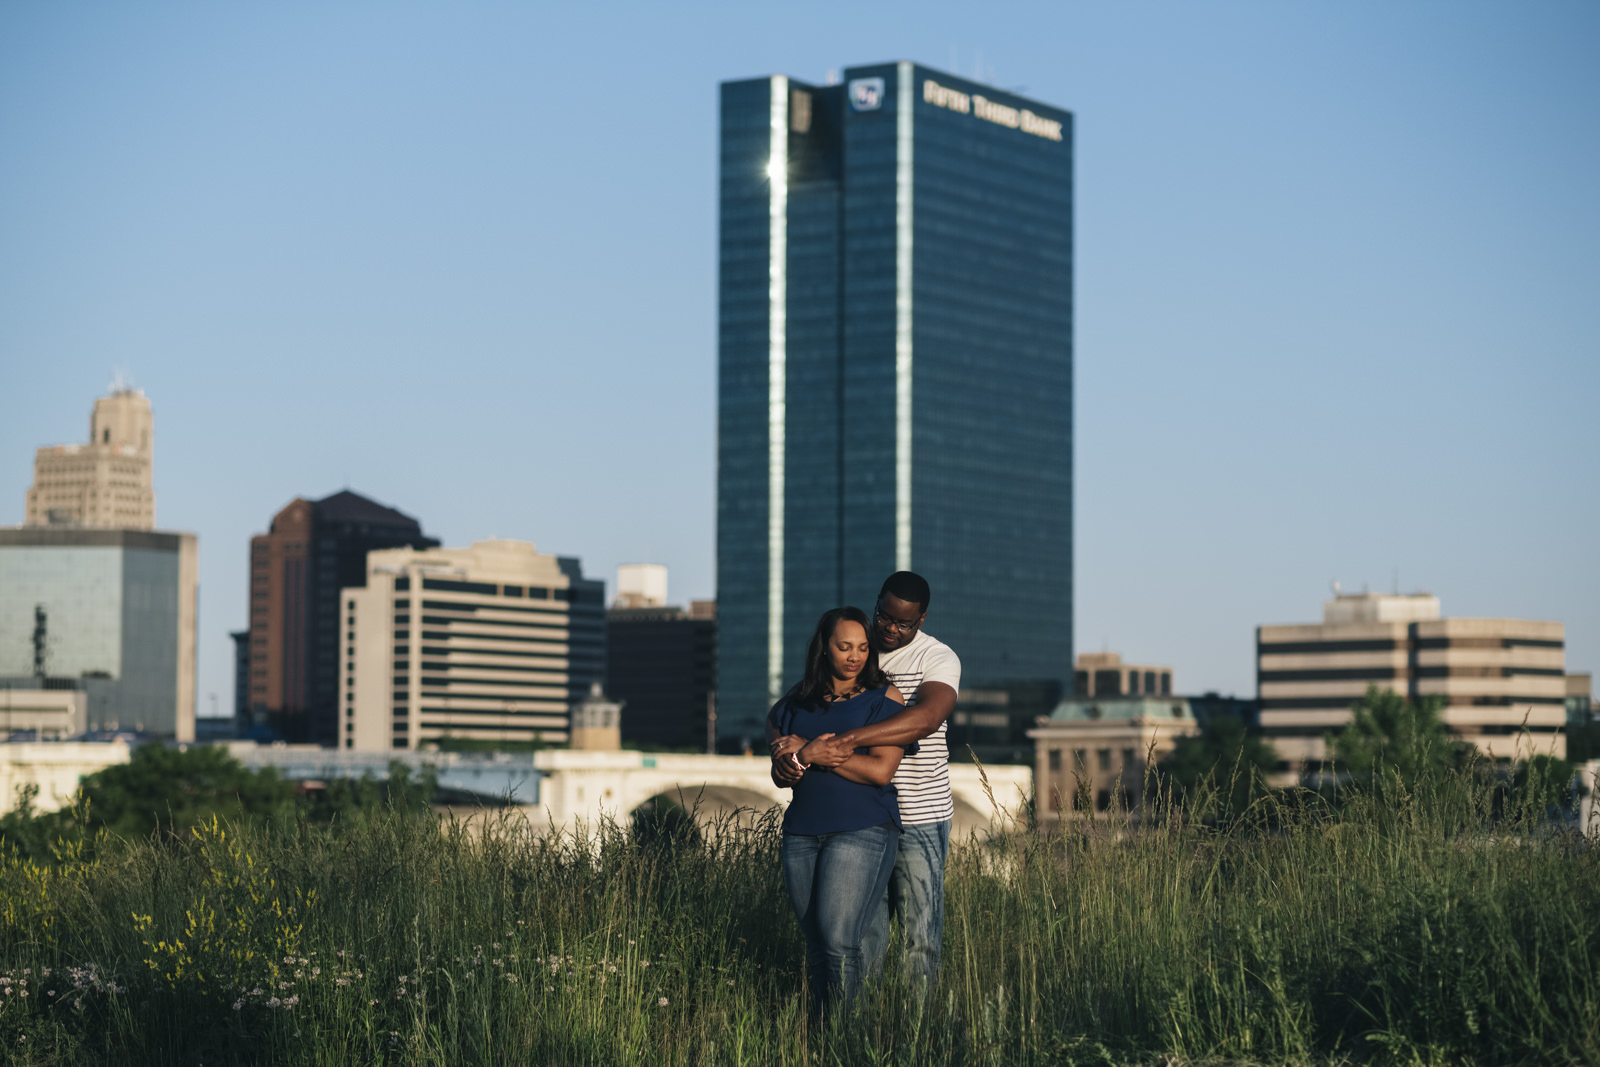 Engagement Session photography in downtown Toledo.